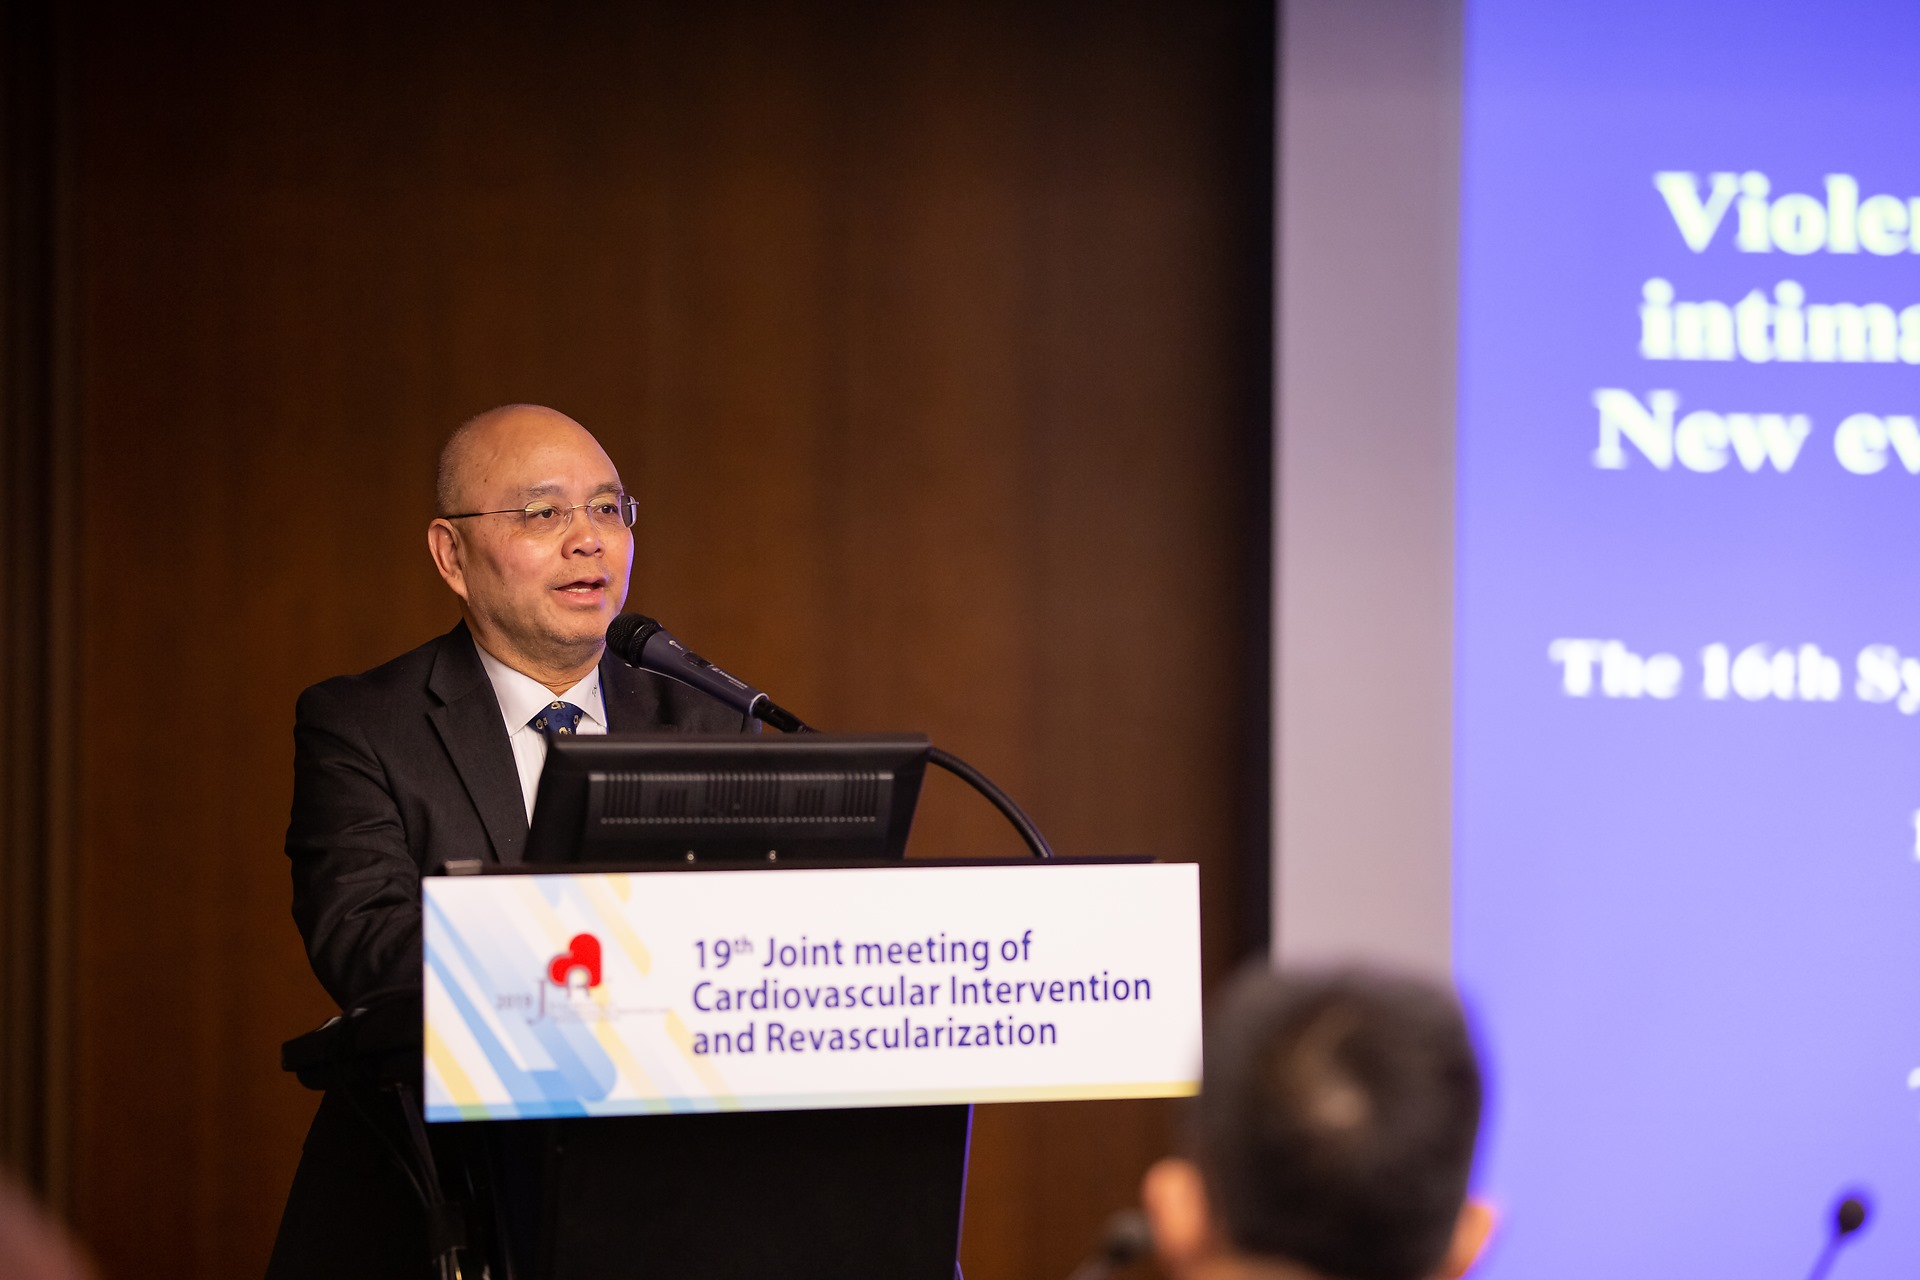 Meet the Vietnamese-American professor who brought interventional cardiology to Vietnam